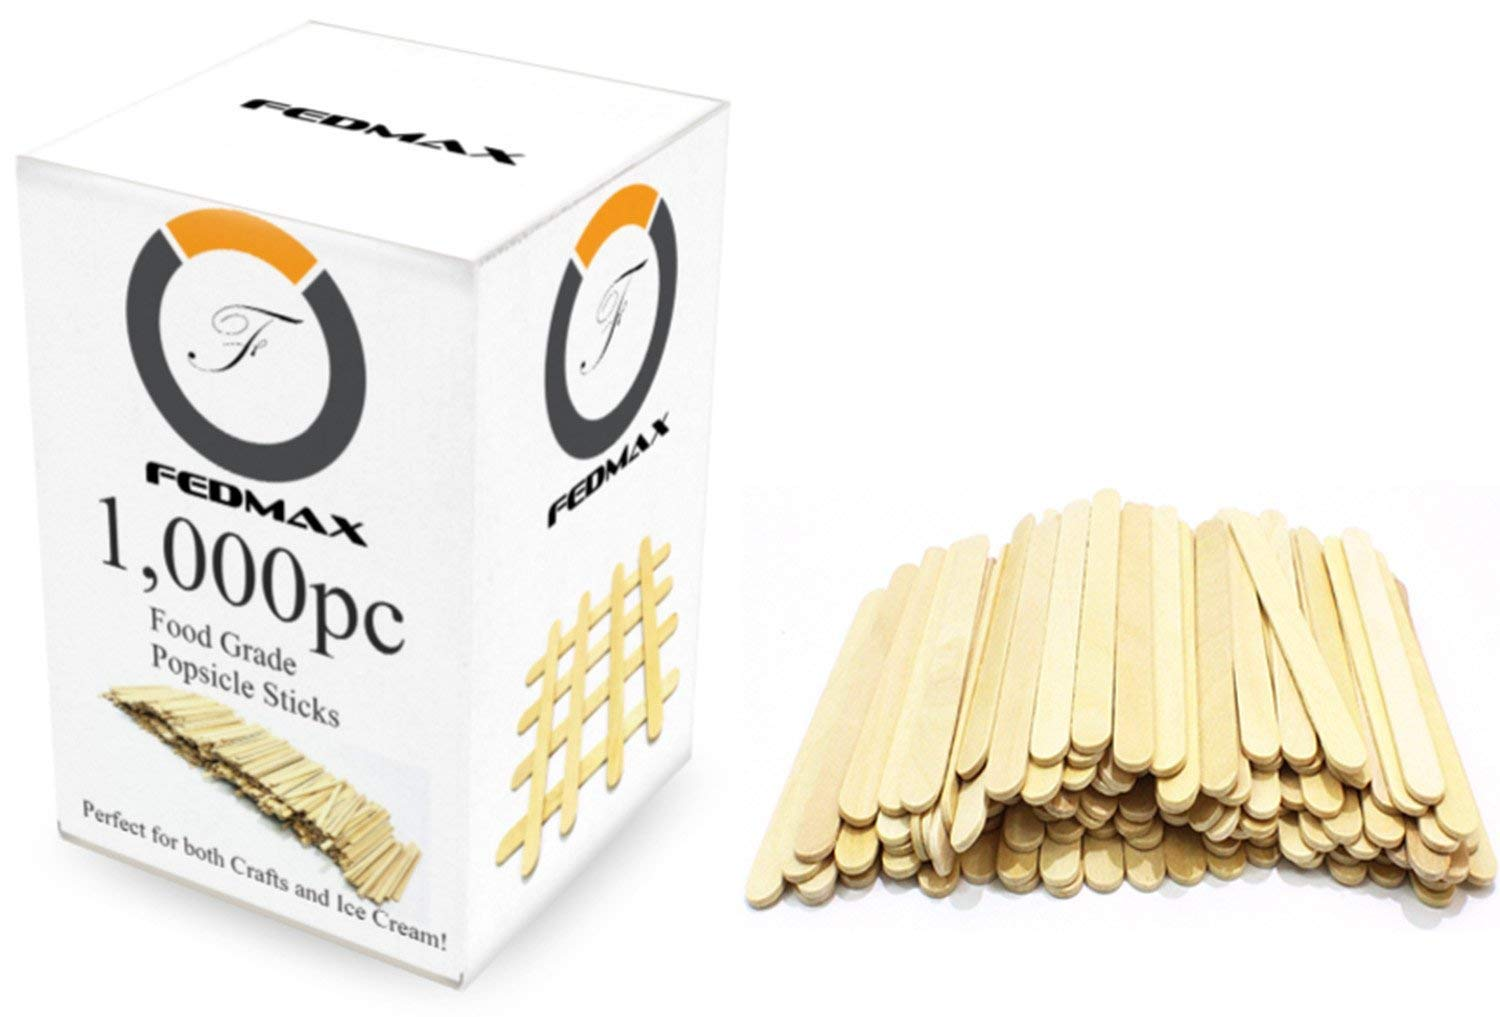 Popsicle Sticks 1 000pc 4 1 2 Length Food Grade Wooden Ice Cream Sticks Great Bulk Sticks for Crafts by Fedmax. 1 000pc